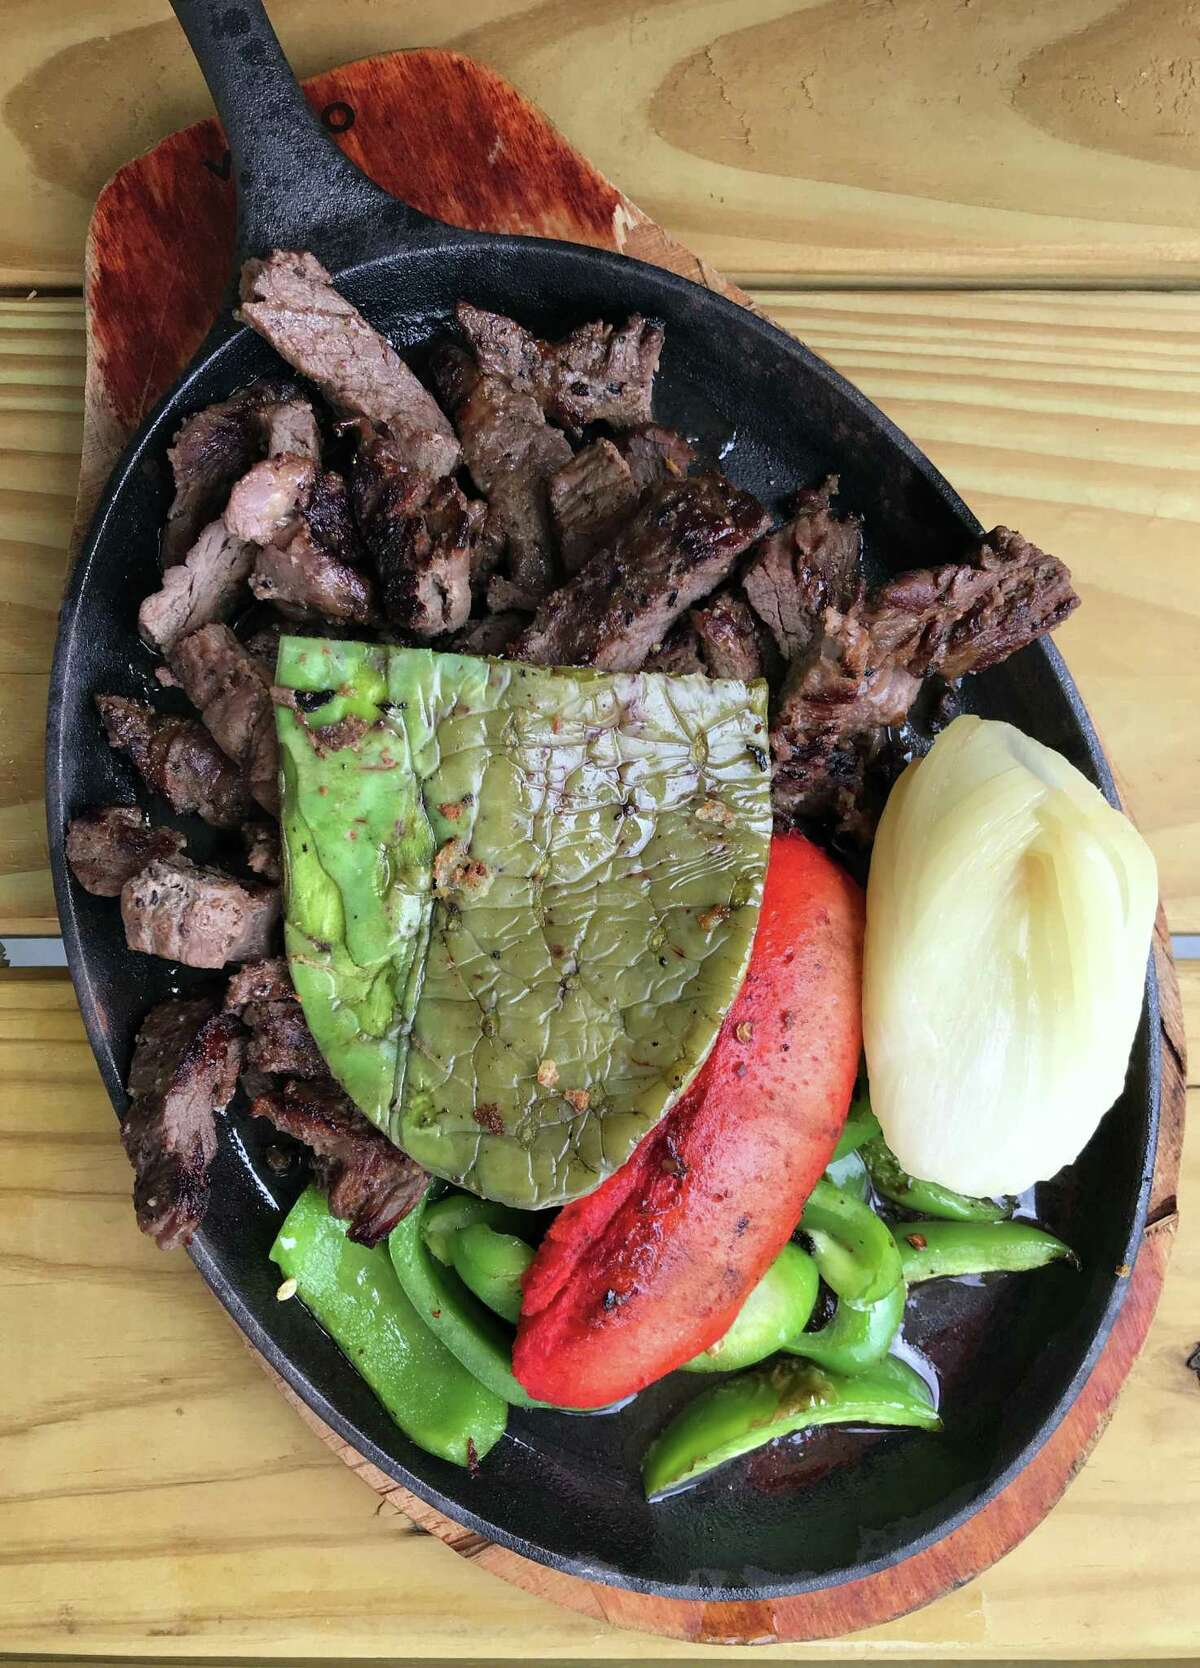 Beef fajitas with a side of grilled nopal and sausage from Pollos El Gallo.